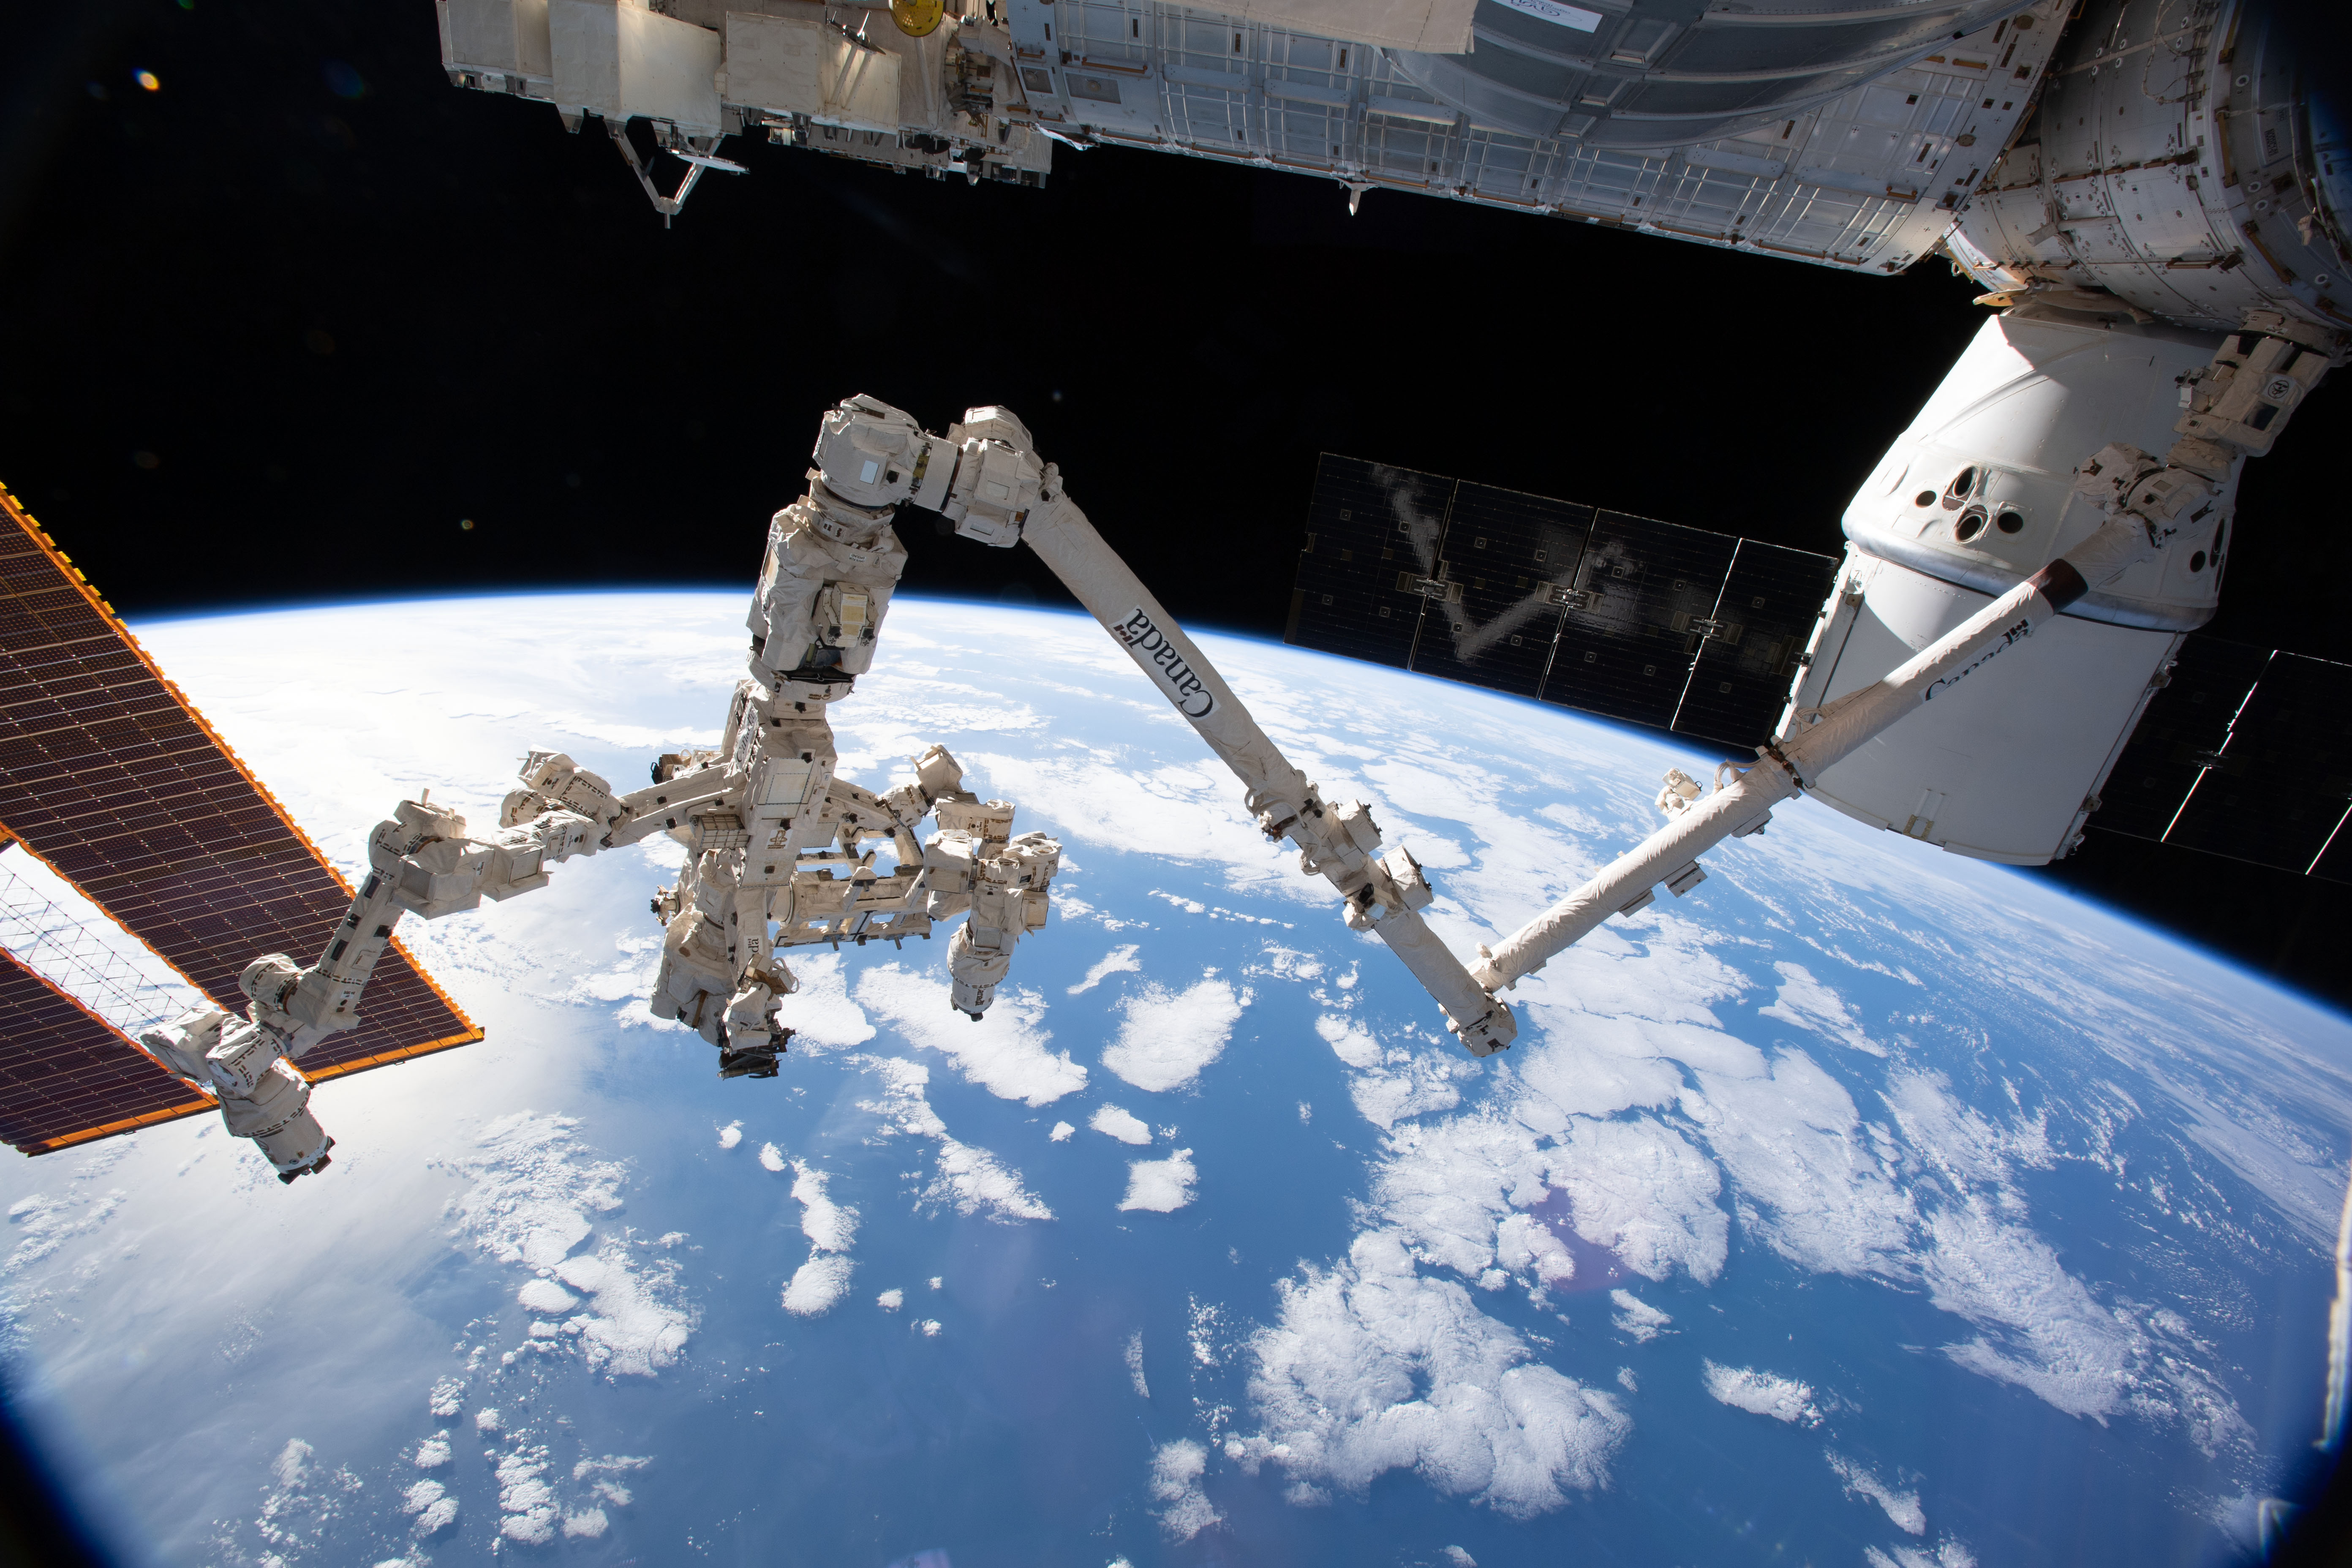 The Canadarm2 robotic arm with its robotic hand Dextre | NASA